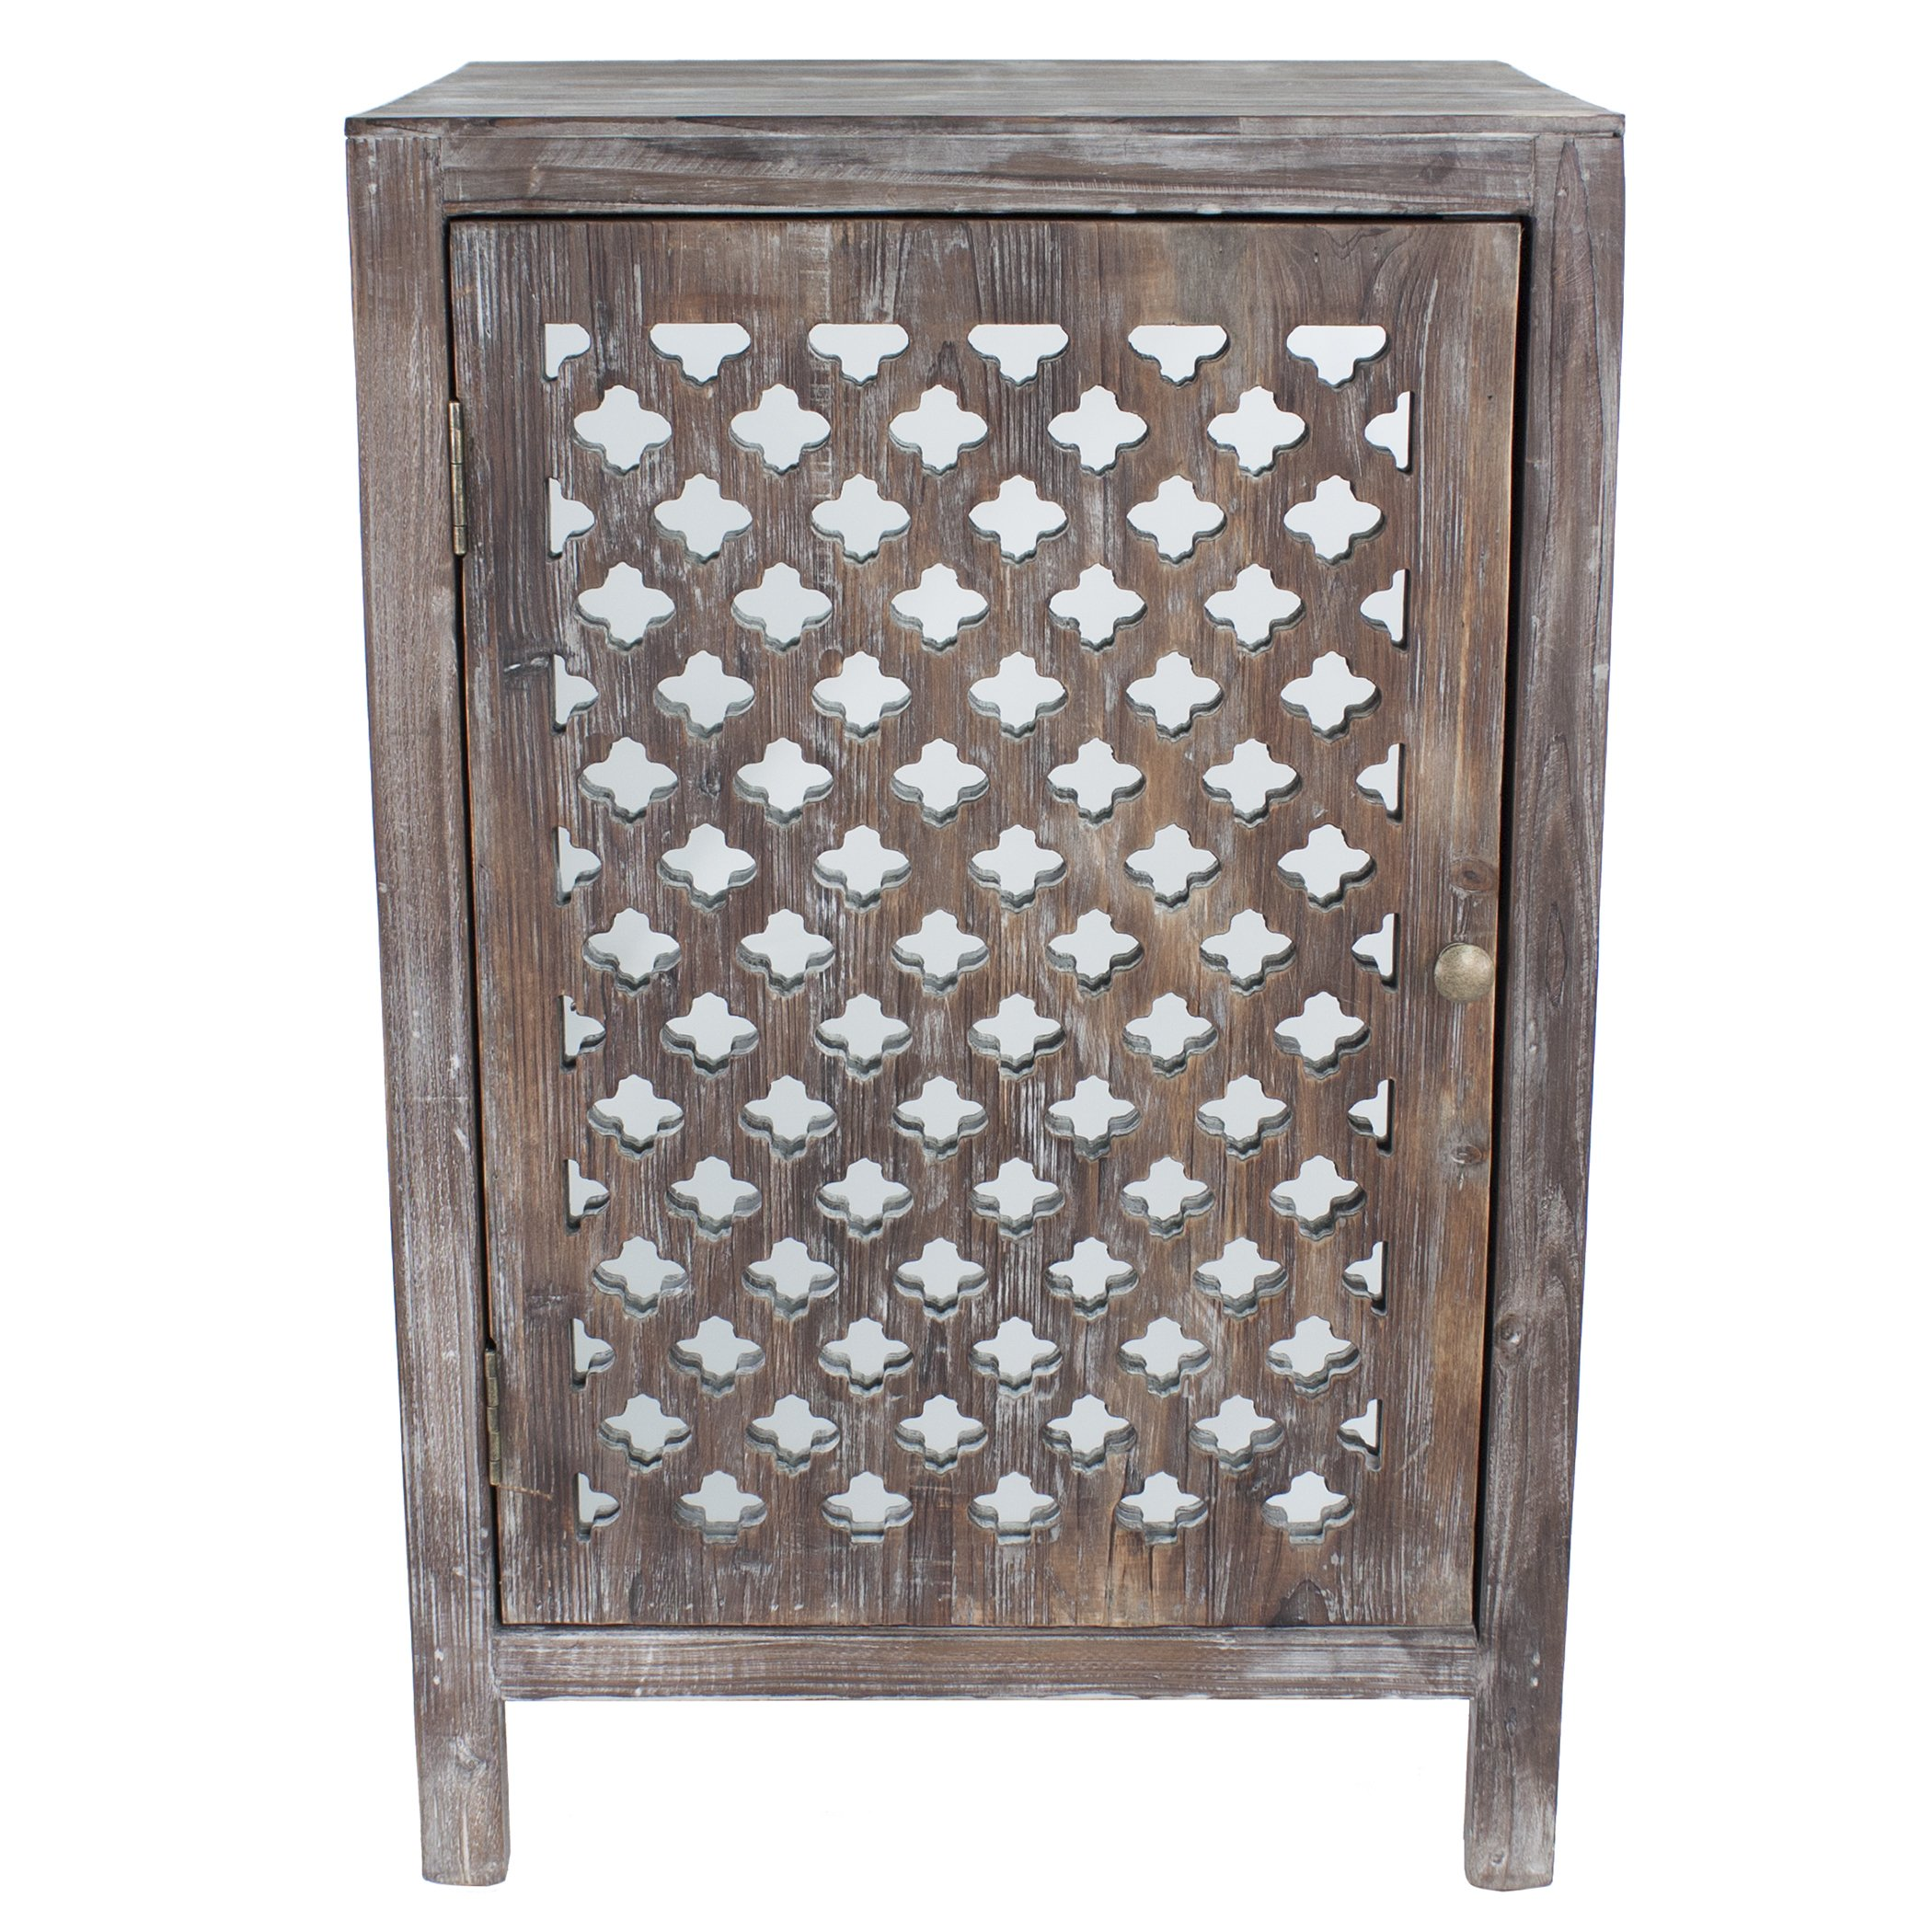 maison rouge anatole distressed grey quatrefoil end table with accent mirror free shipping orders over bedside lights door treads wooden folding outdoor coffee wide side wagon